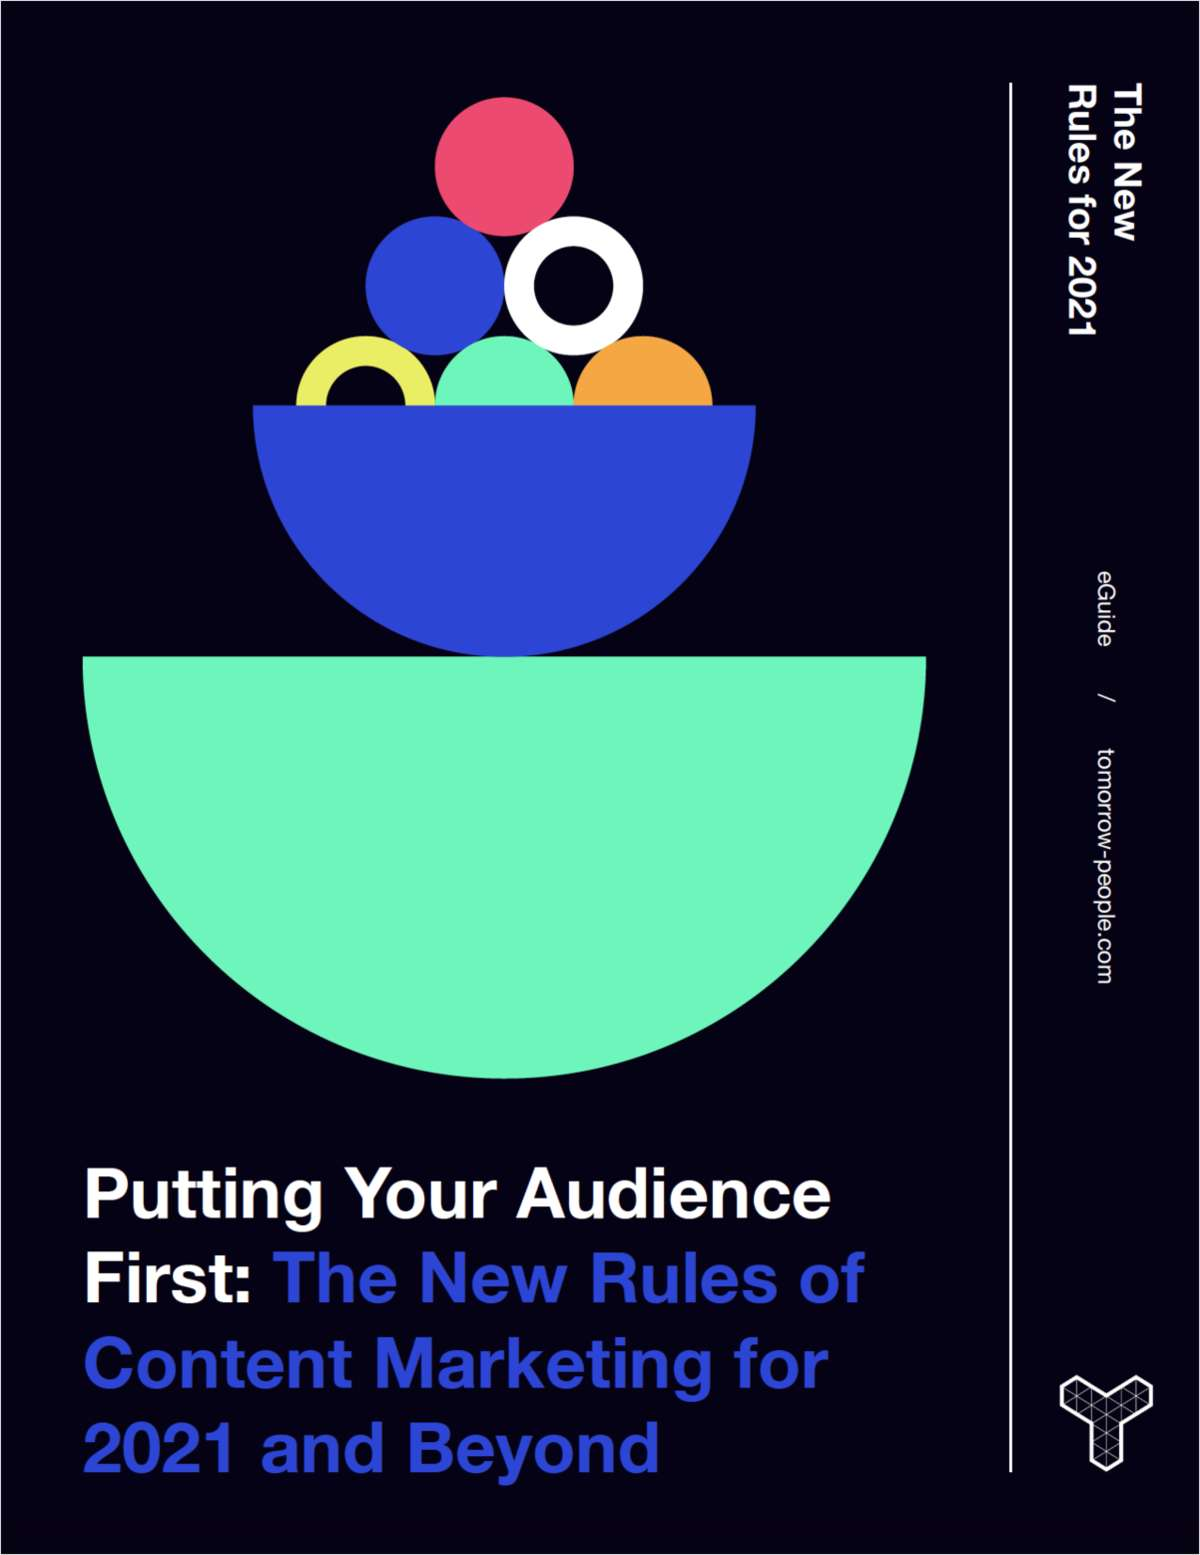 Putting Your Audience First - The New Rules of Content Marketing for 2021 and Beyond